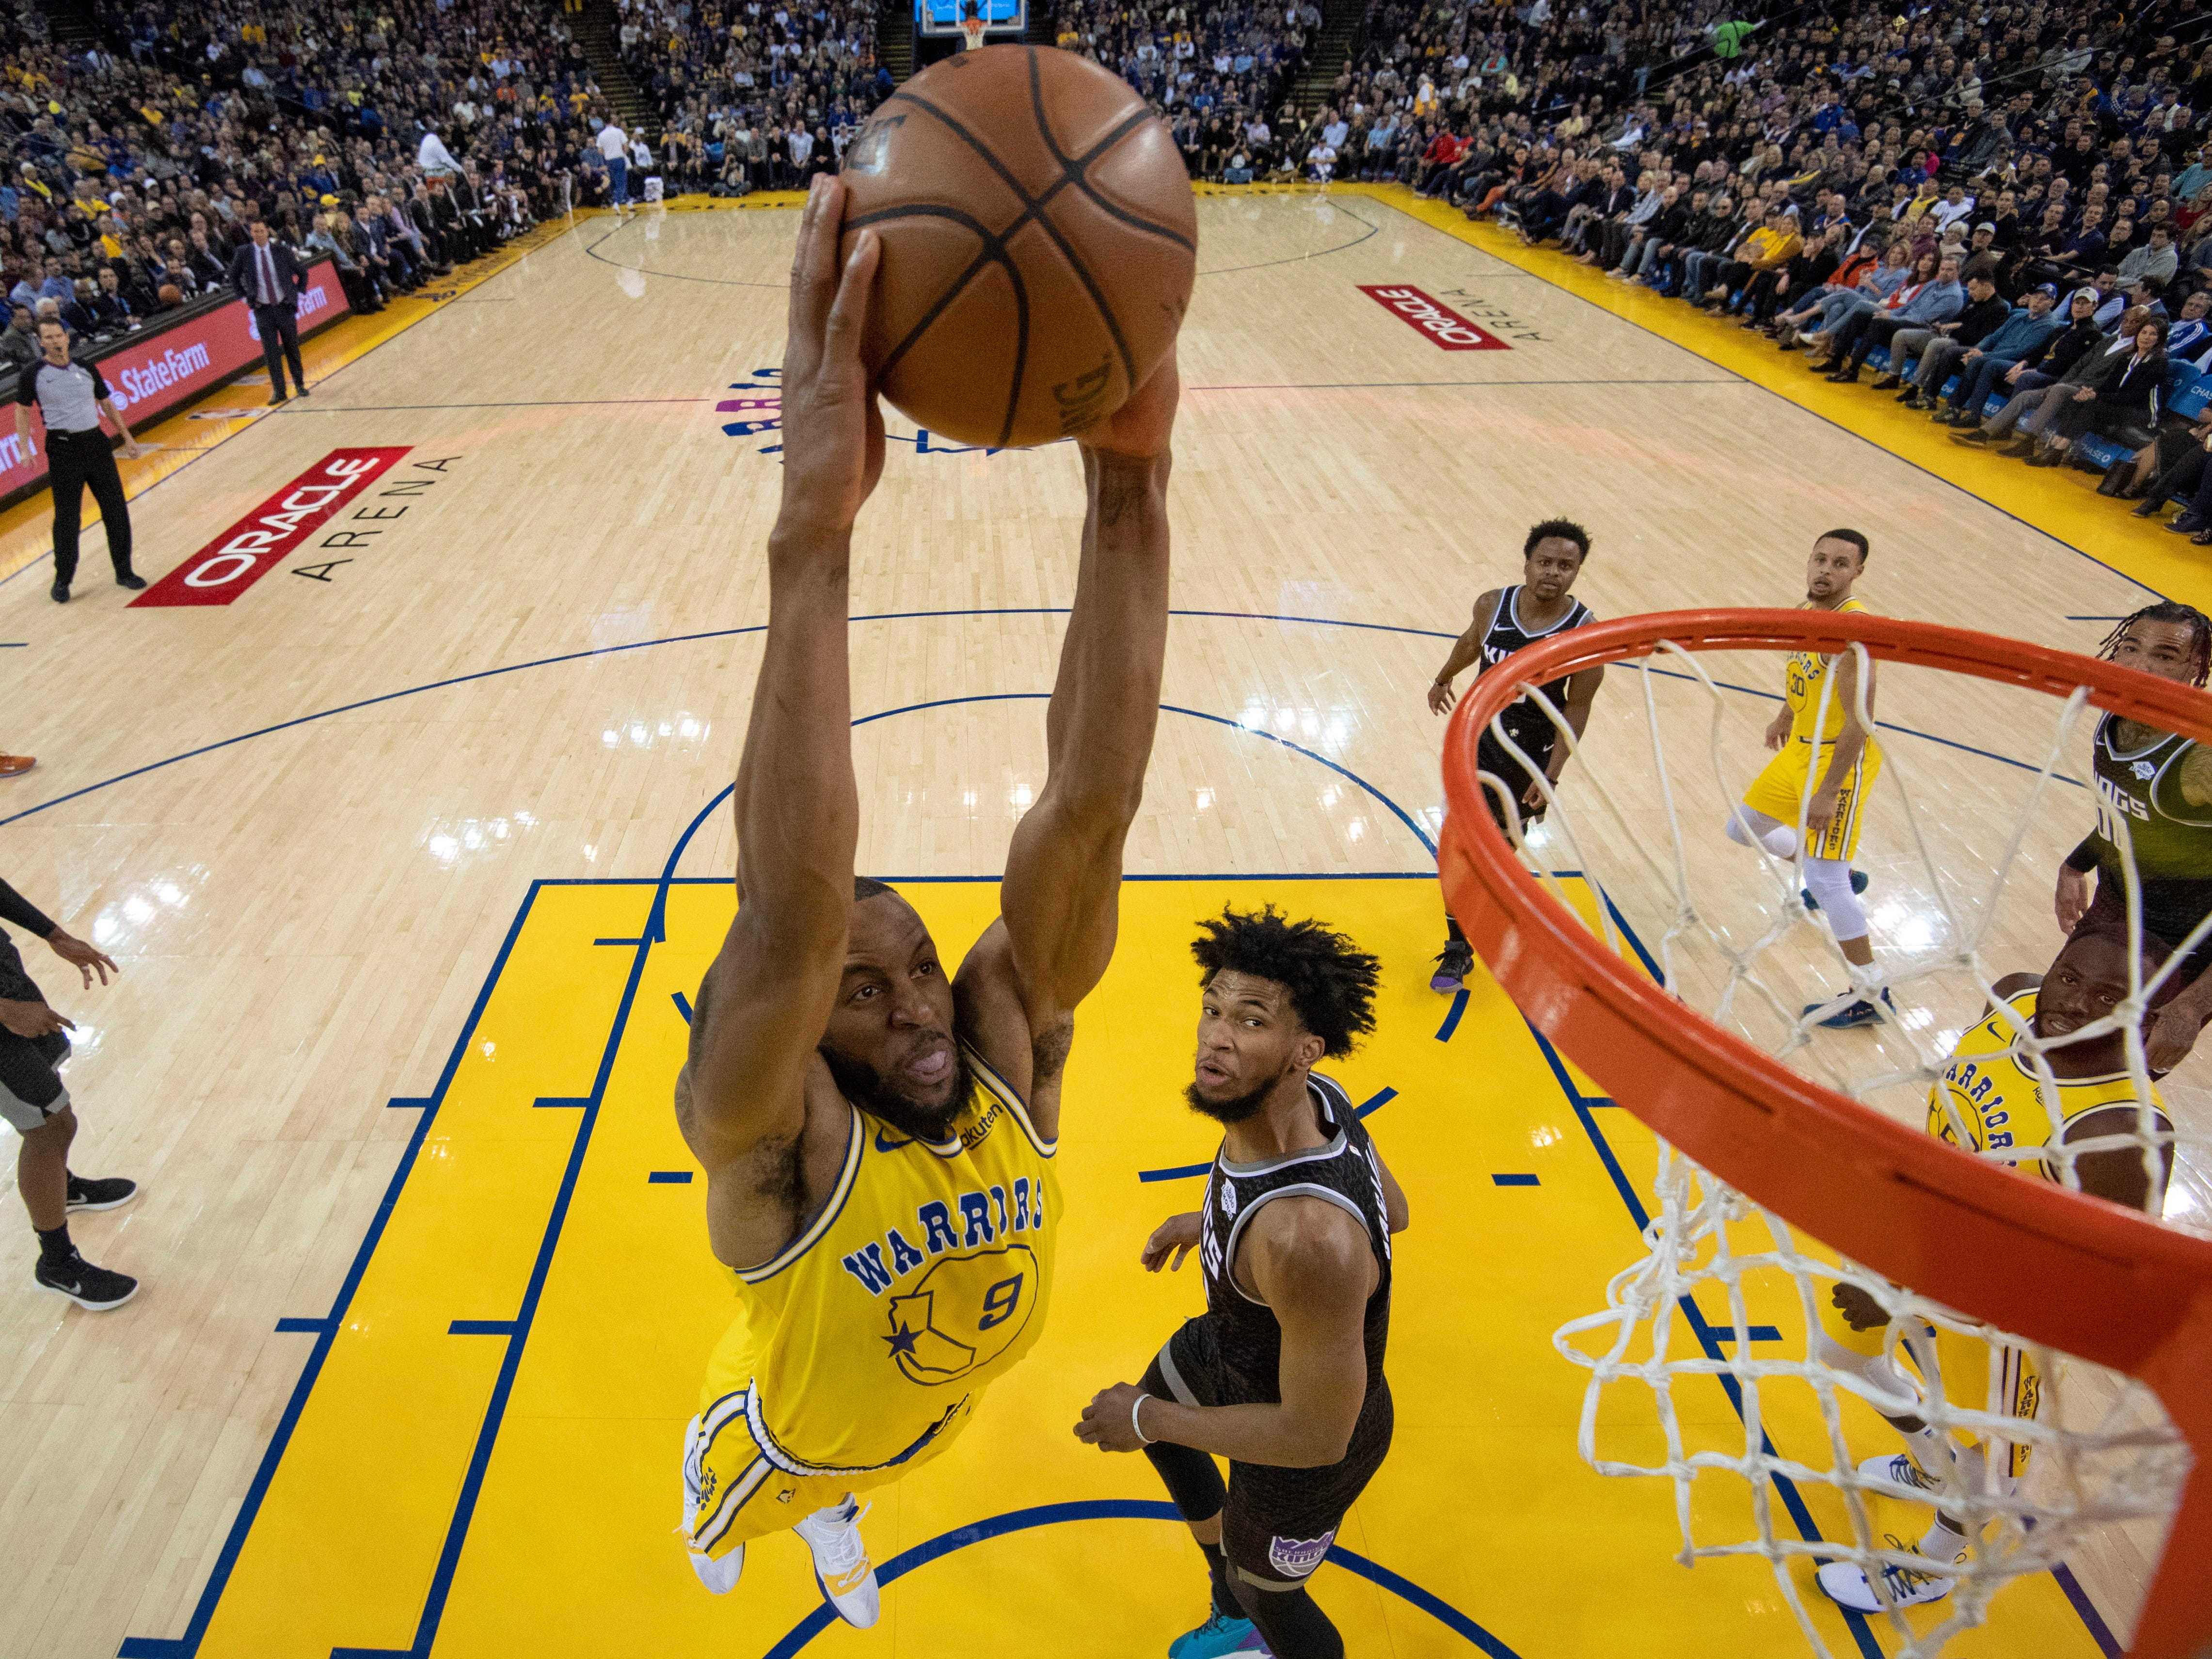 Feb. 21: Warriors forward Andre Iguodala (9) drives past Kings defender Marvin Bagley III (35) for the two-handed slam.